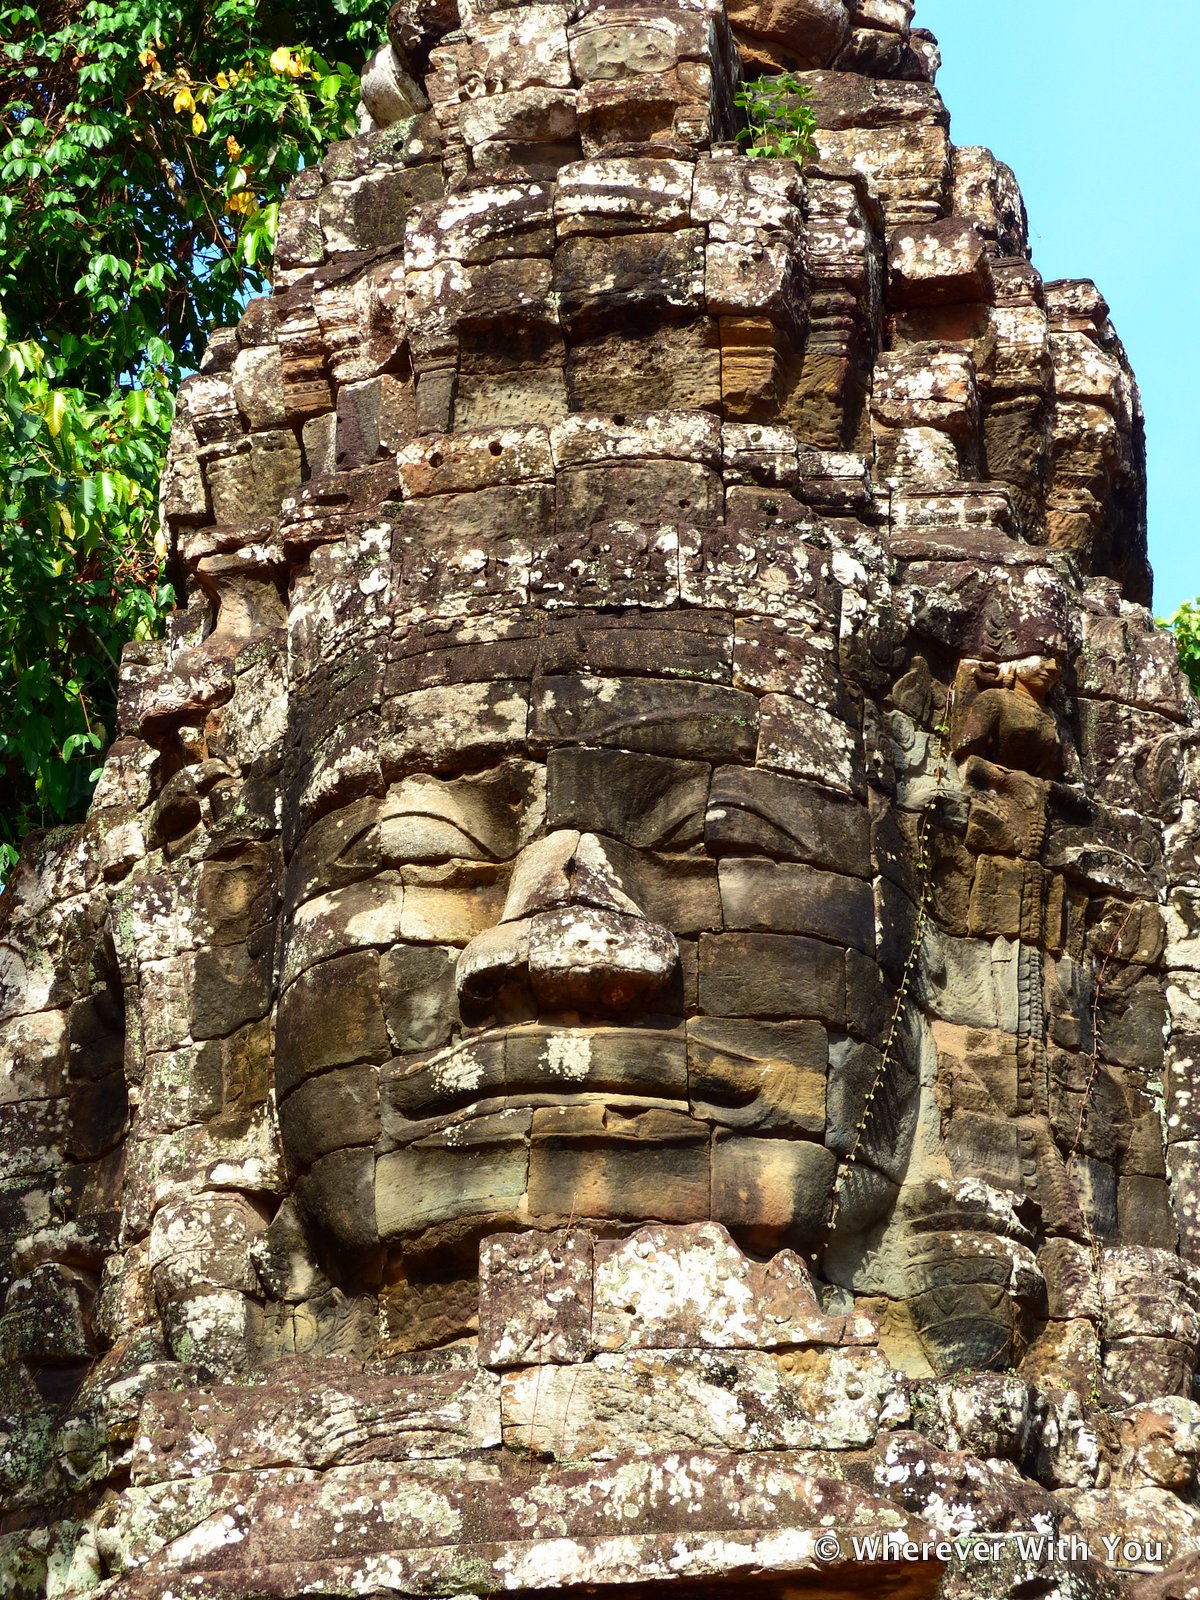 This face tower at Banteay Kdei keeps watch over the gate.